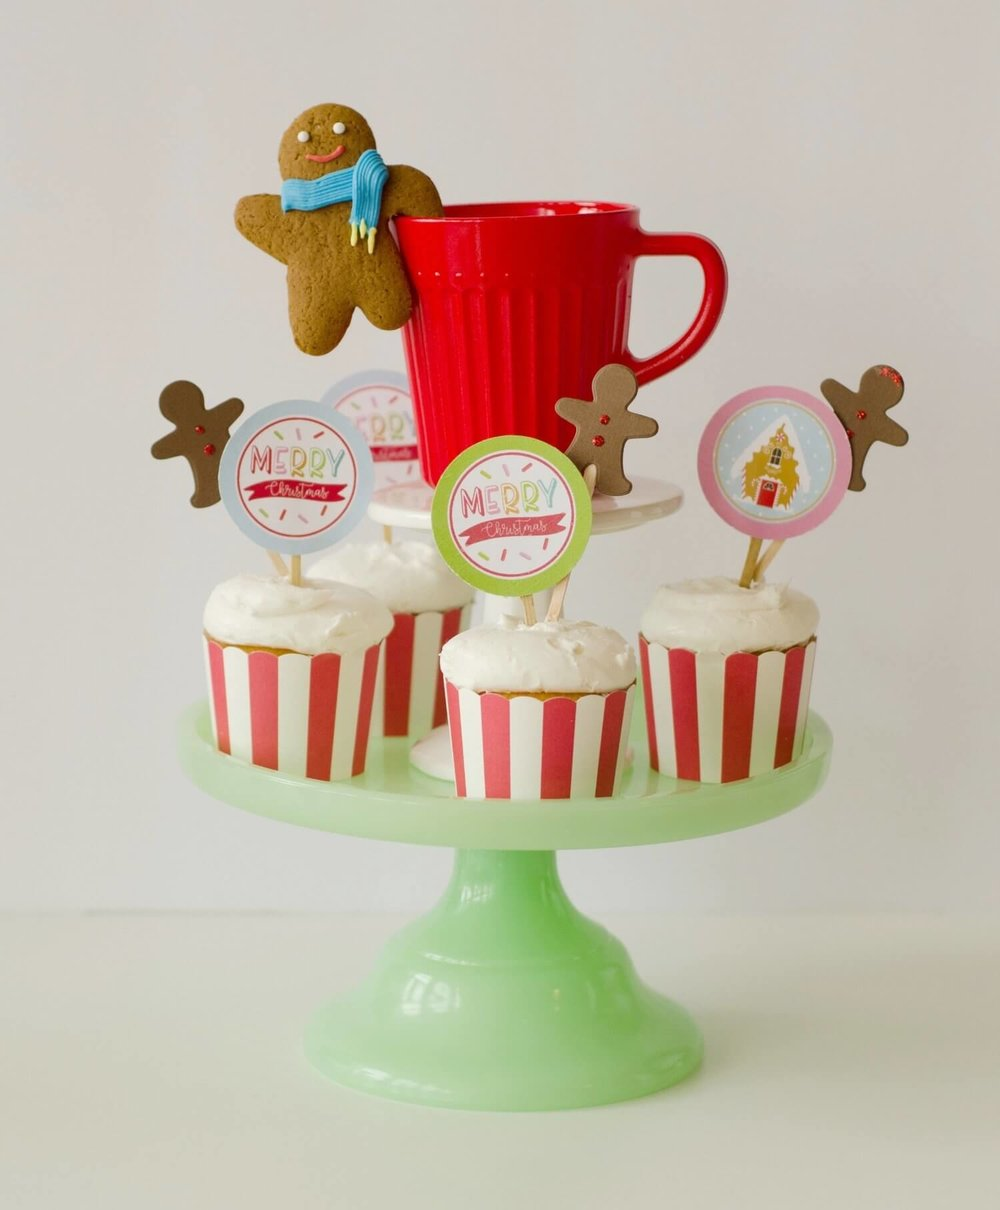 Christmas Cupcakes and toppers.  Link to printables on the blog.  Lots of kids Christmas party decor ideas